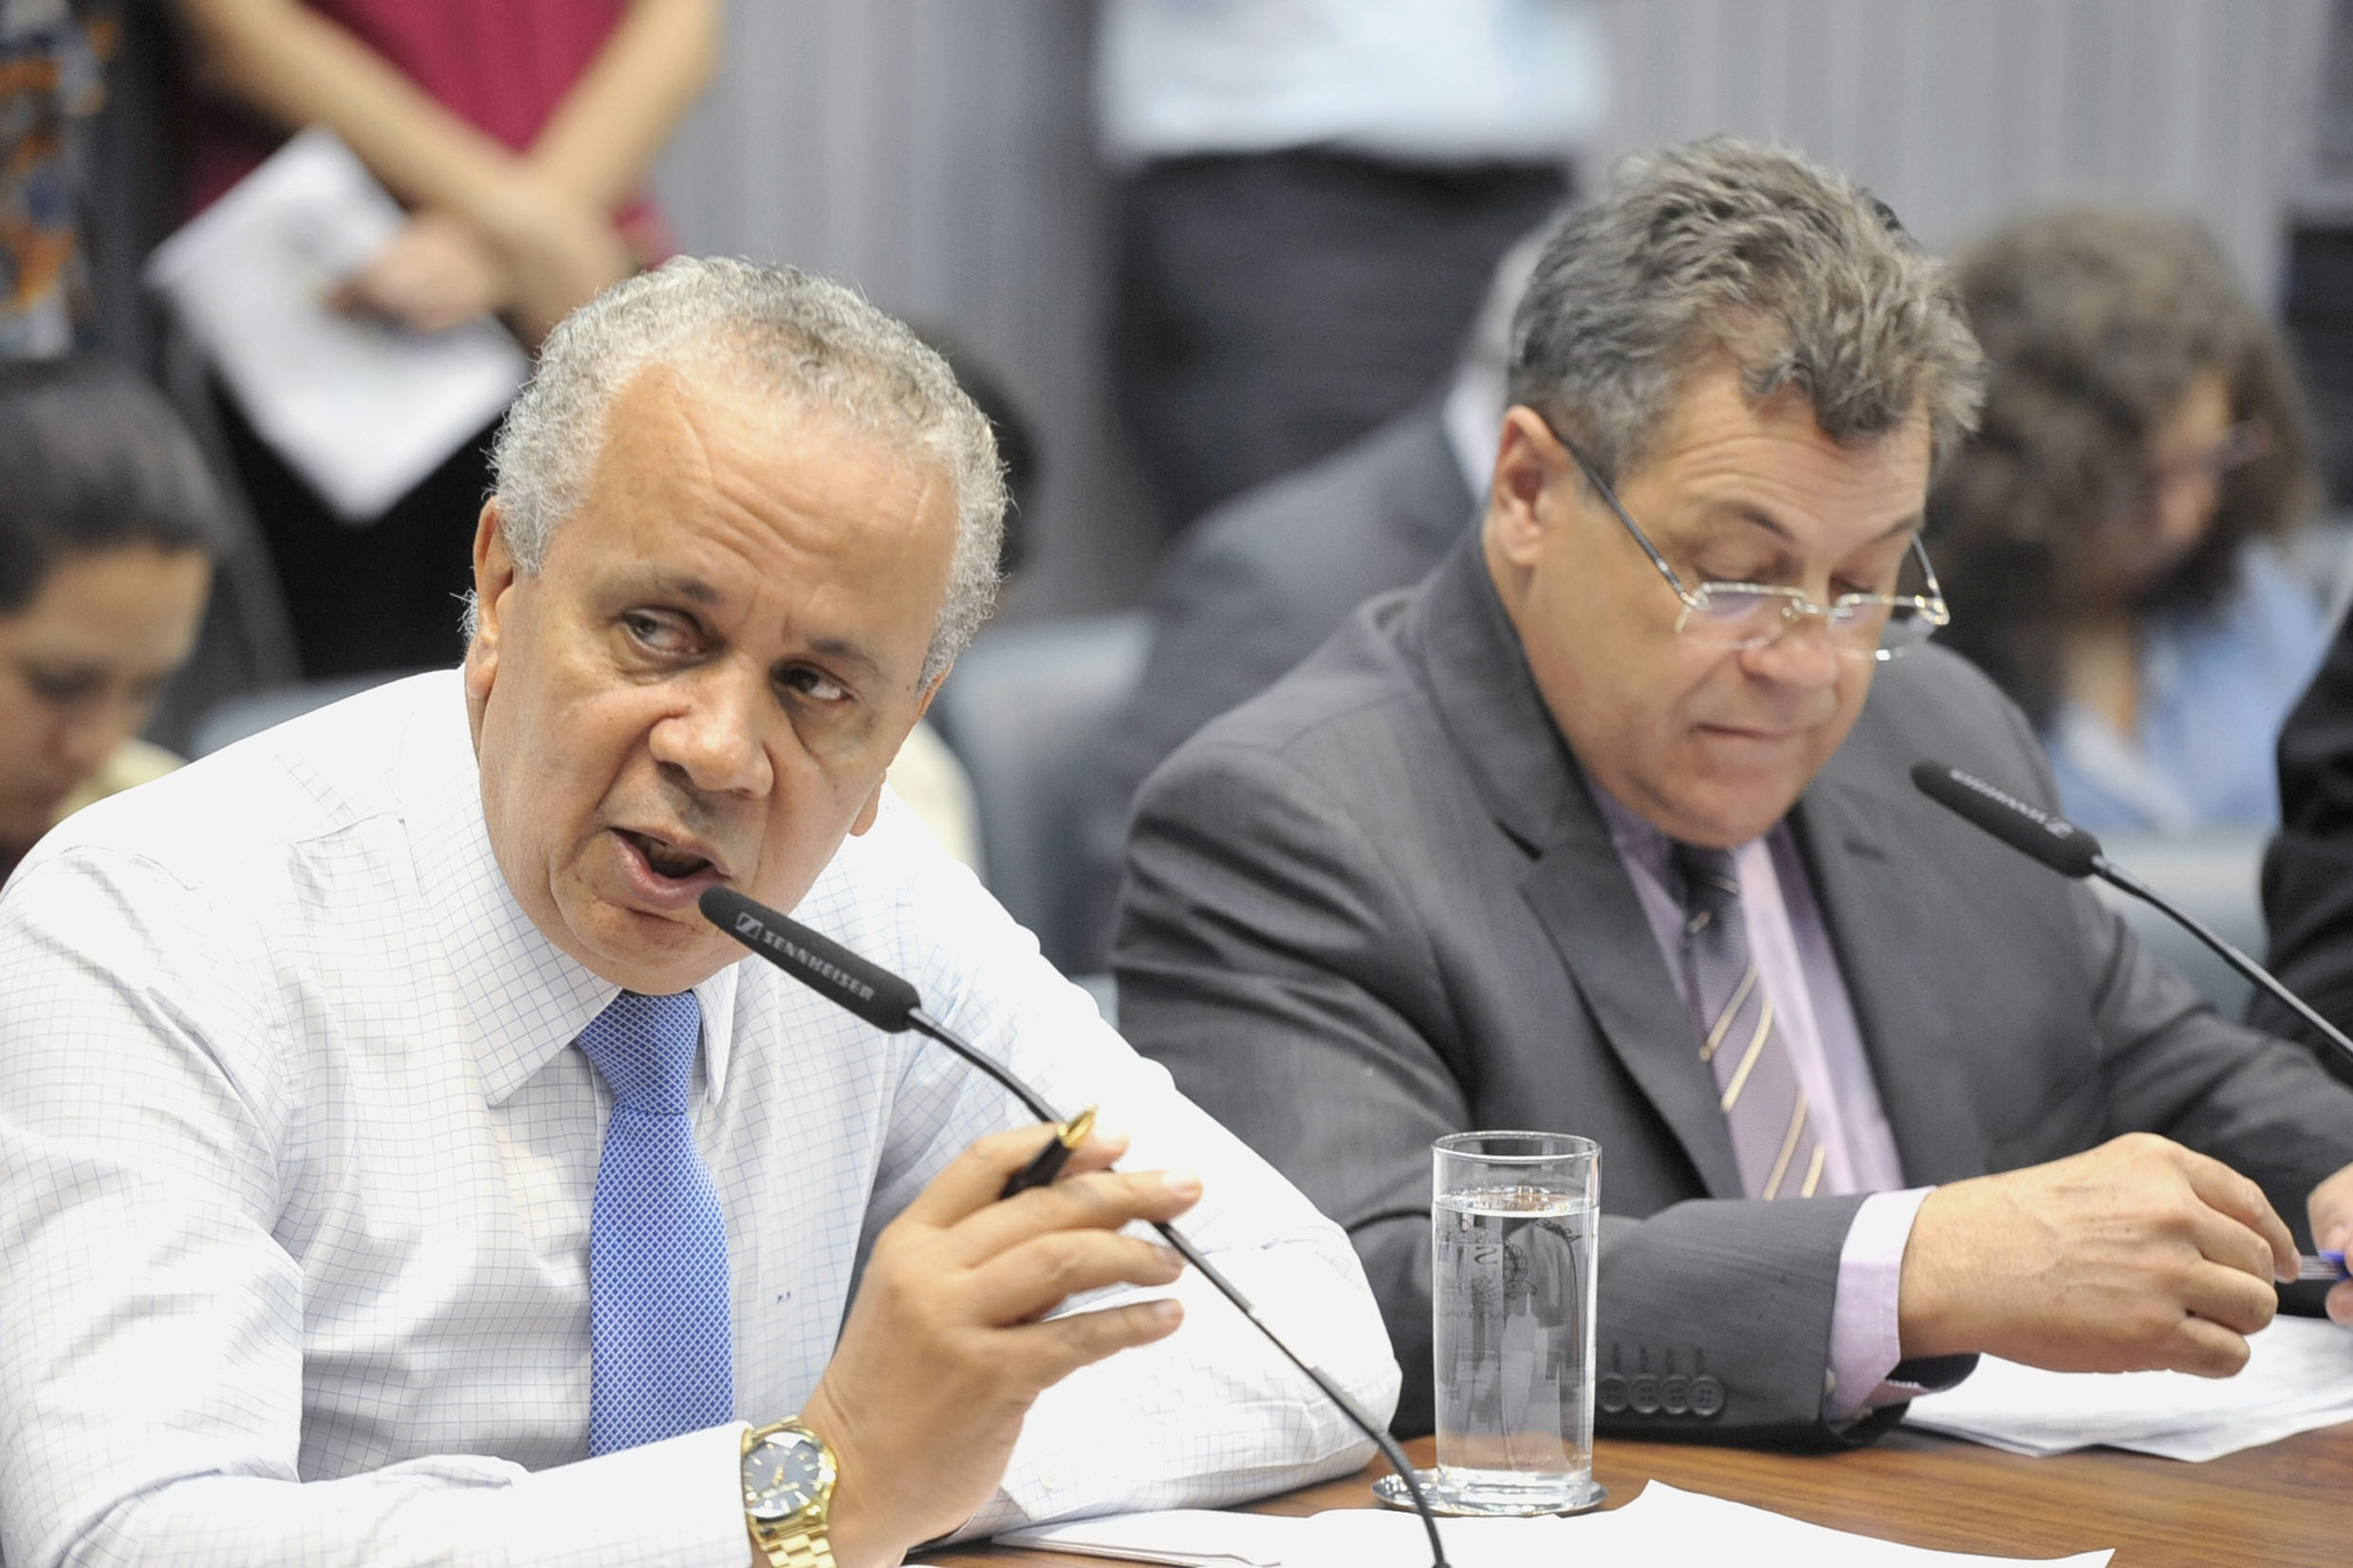 Parlamentares na comissão<a style='float:right' href='https://www3.al.sp.gov.br/repositorio/noticia/N-05-2019/fg234491.jpg' target=_blank><img src='/_img/material-file-download-white.png' width='14px' alt='Clique para baixar a imagem'></a>